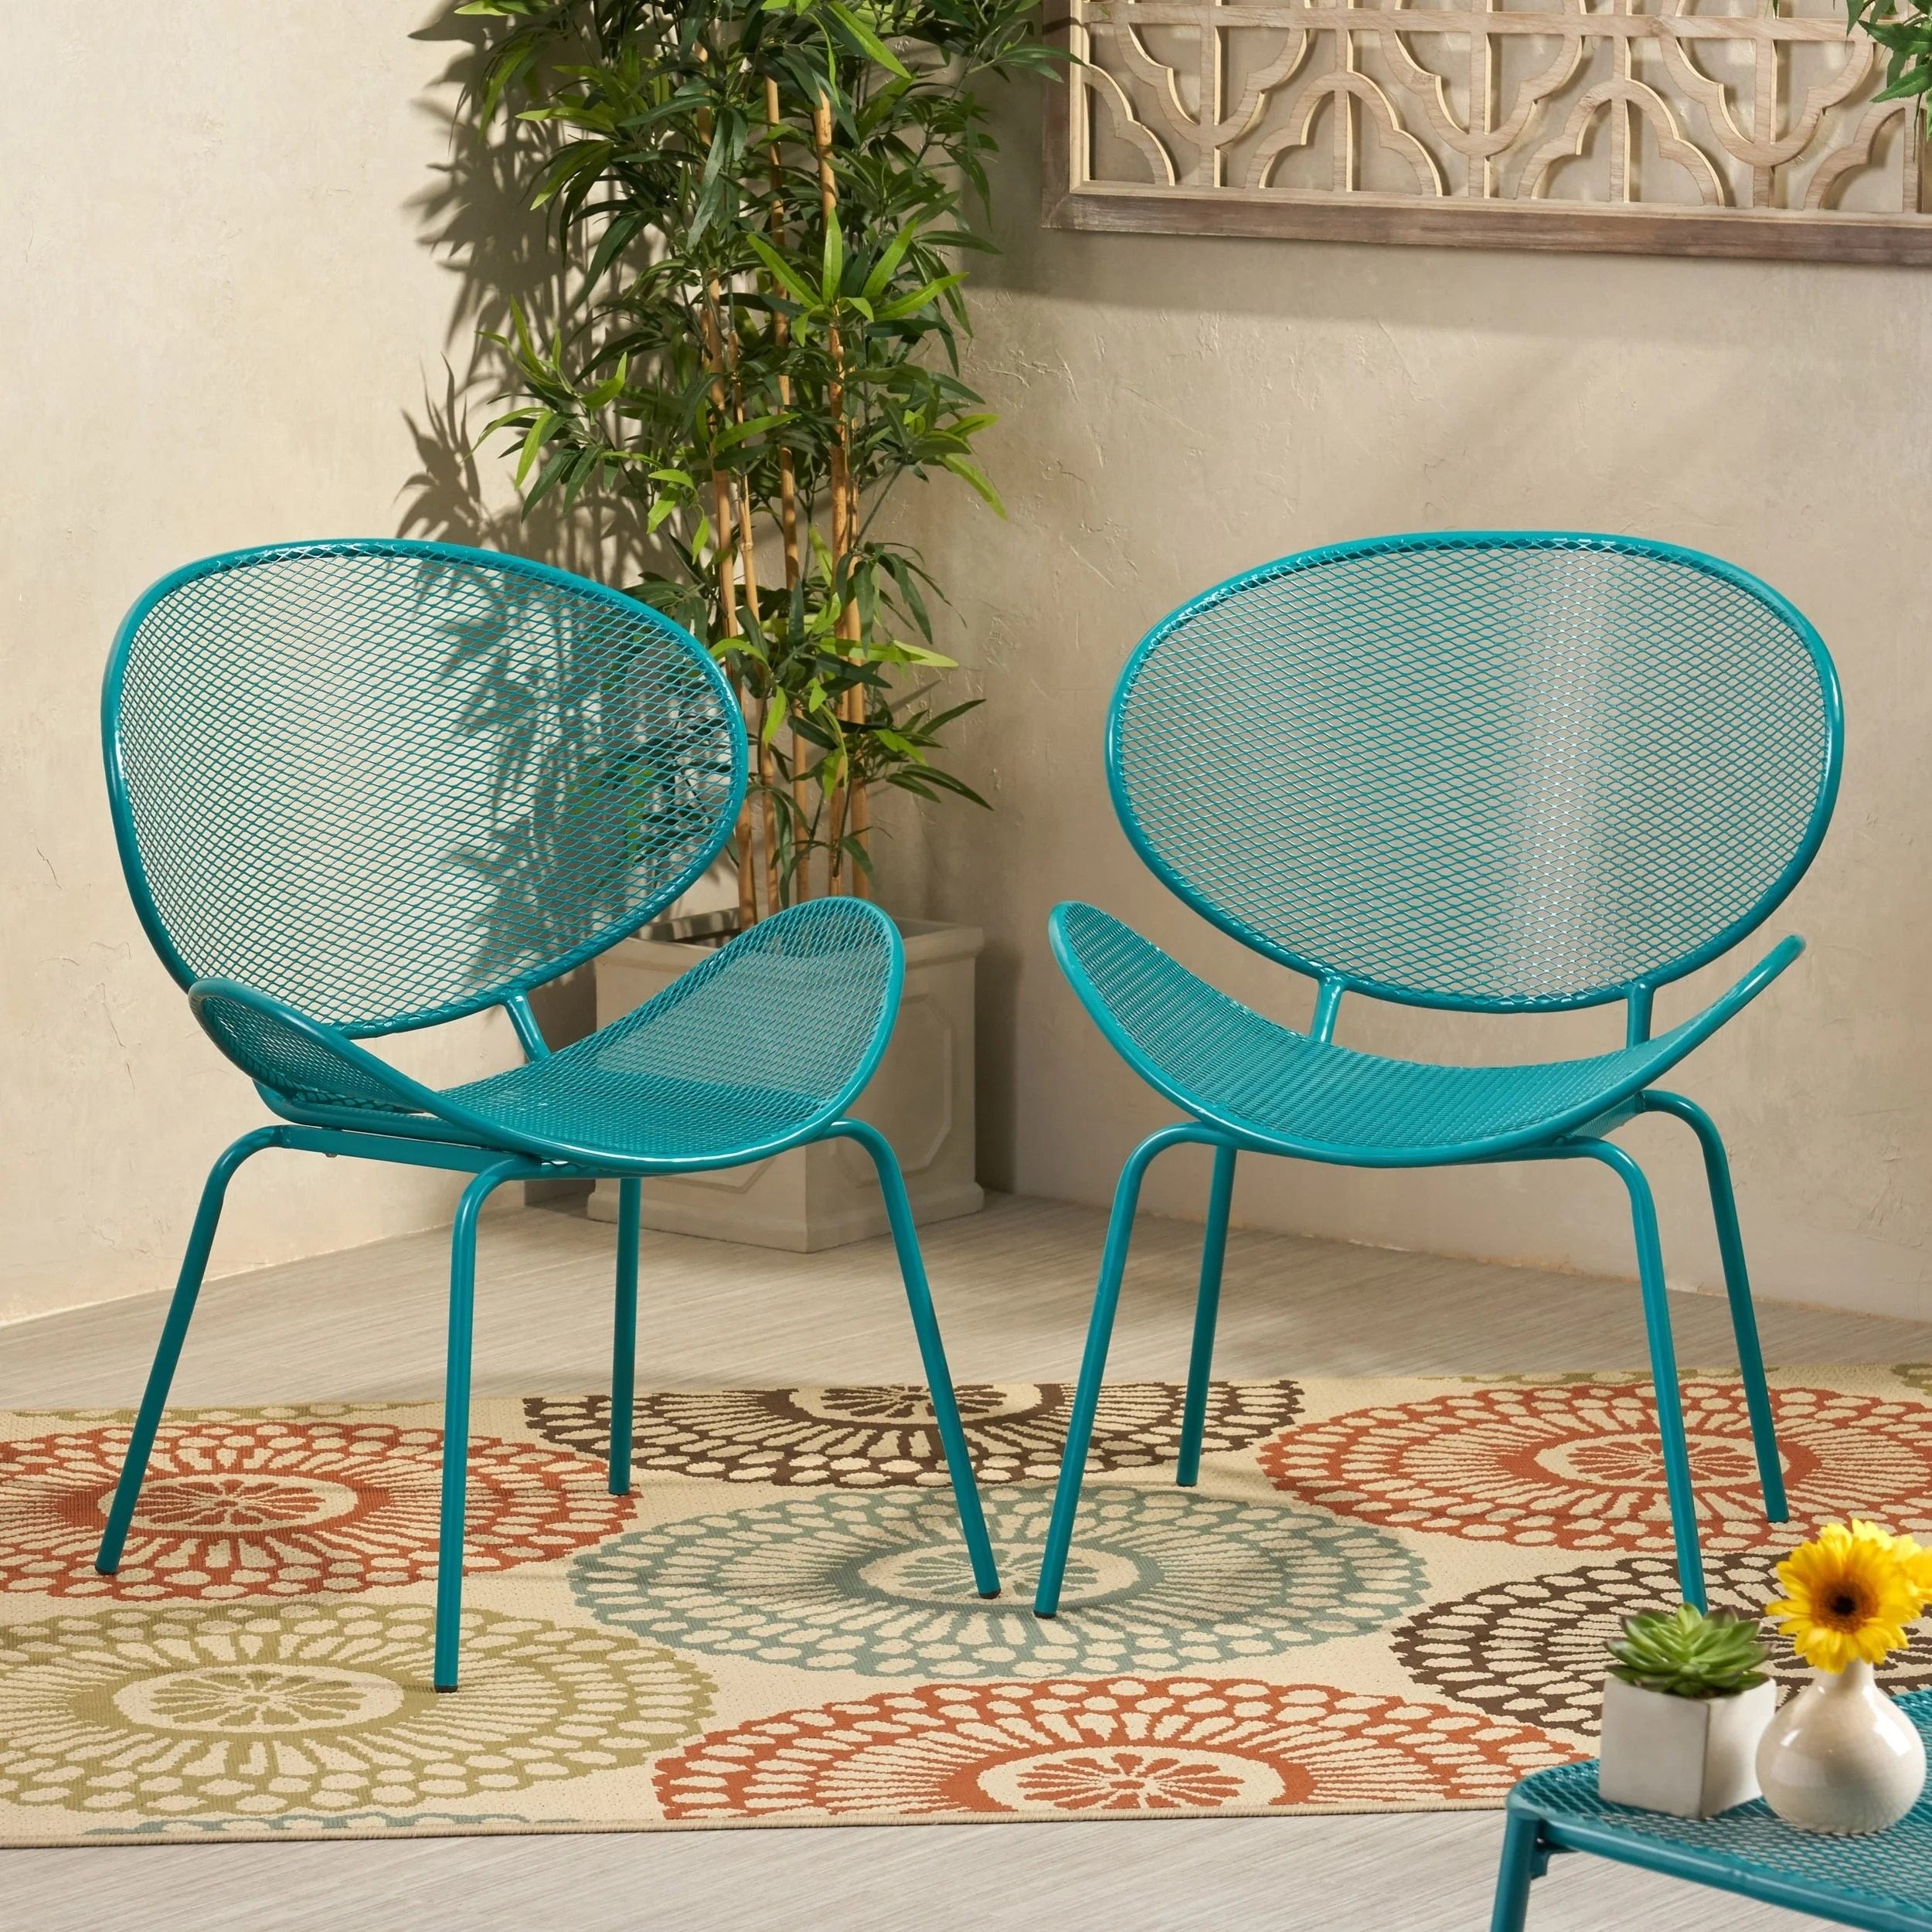 elloree outdoor dining chair set of 2 by christopher knight home